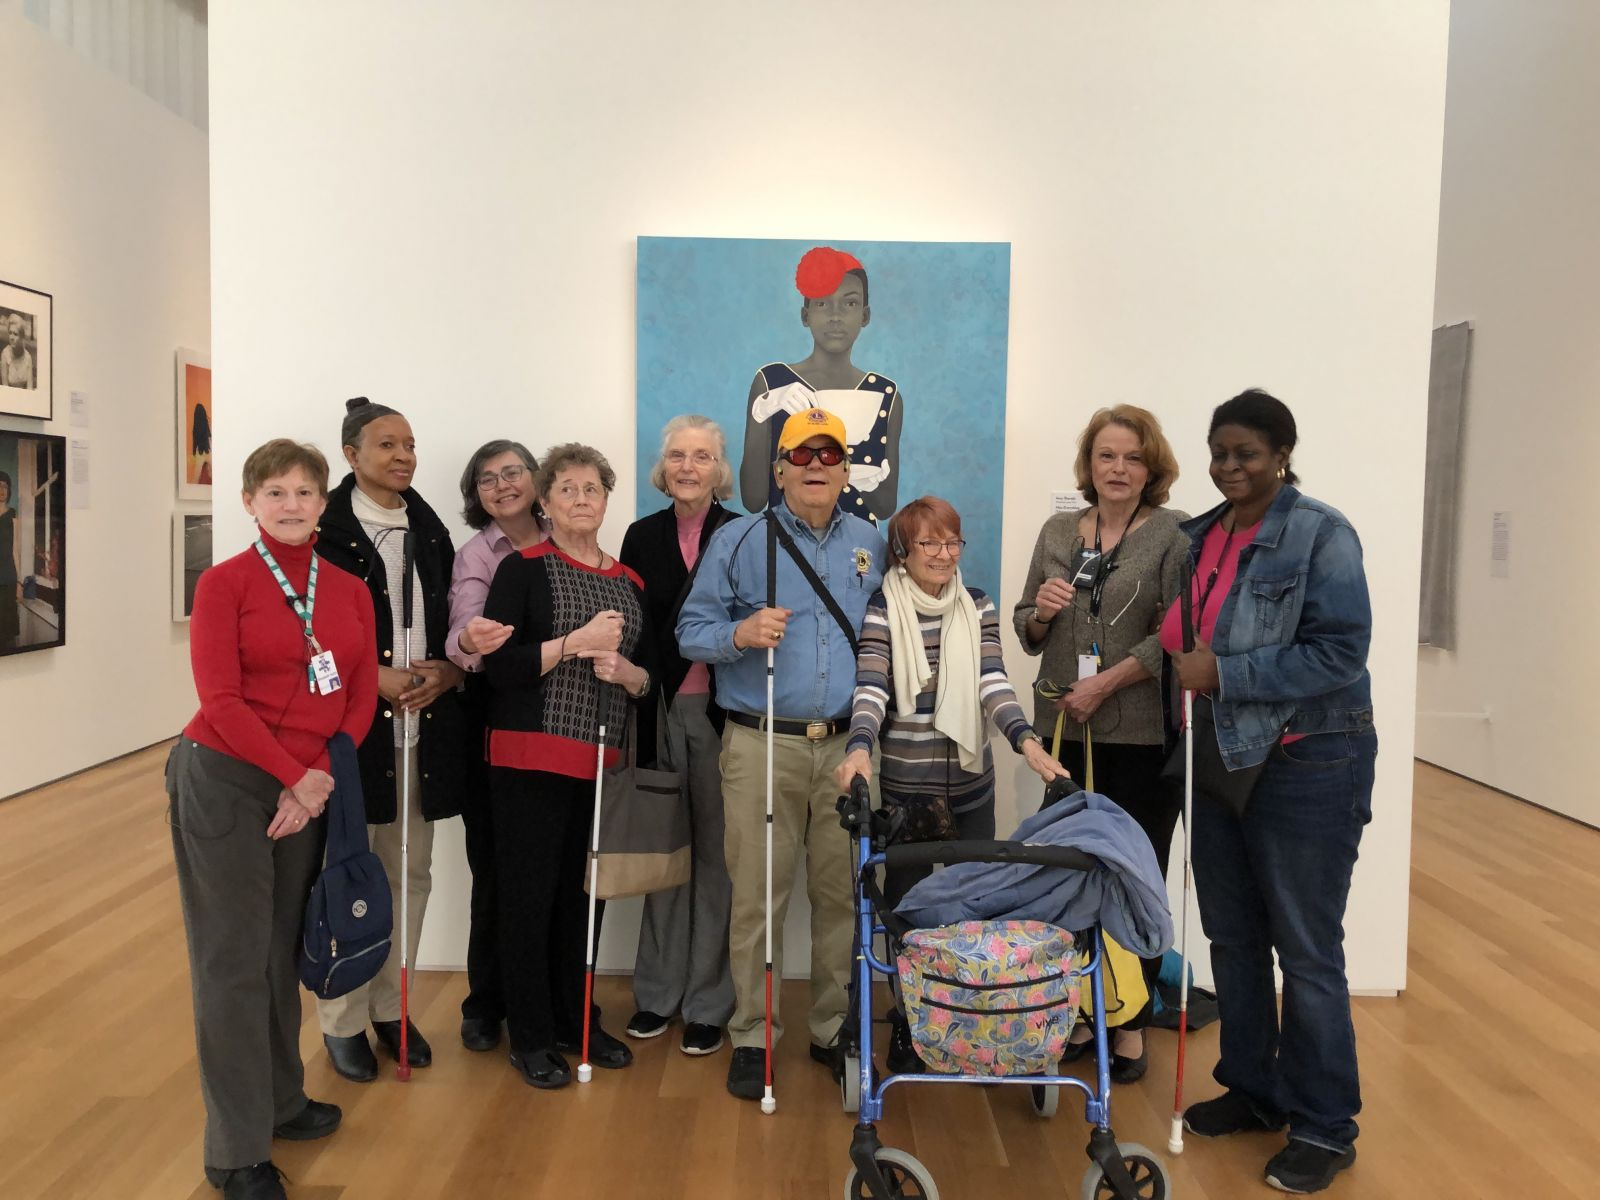 Docent Tour Group at NC Museum of Art L/R:  Elizabeth Kahn, Jo Anne King, Beth McGuire, Susan McKay, Lion Dale Graham, Lion Bill Graham, Diana Cook, Donna King & Lion Karyn Hampton